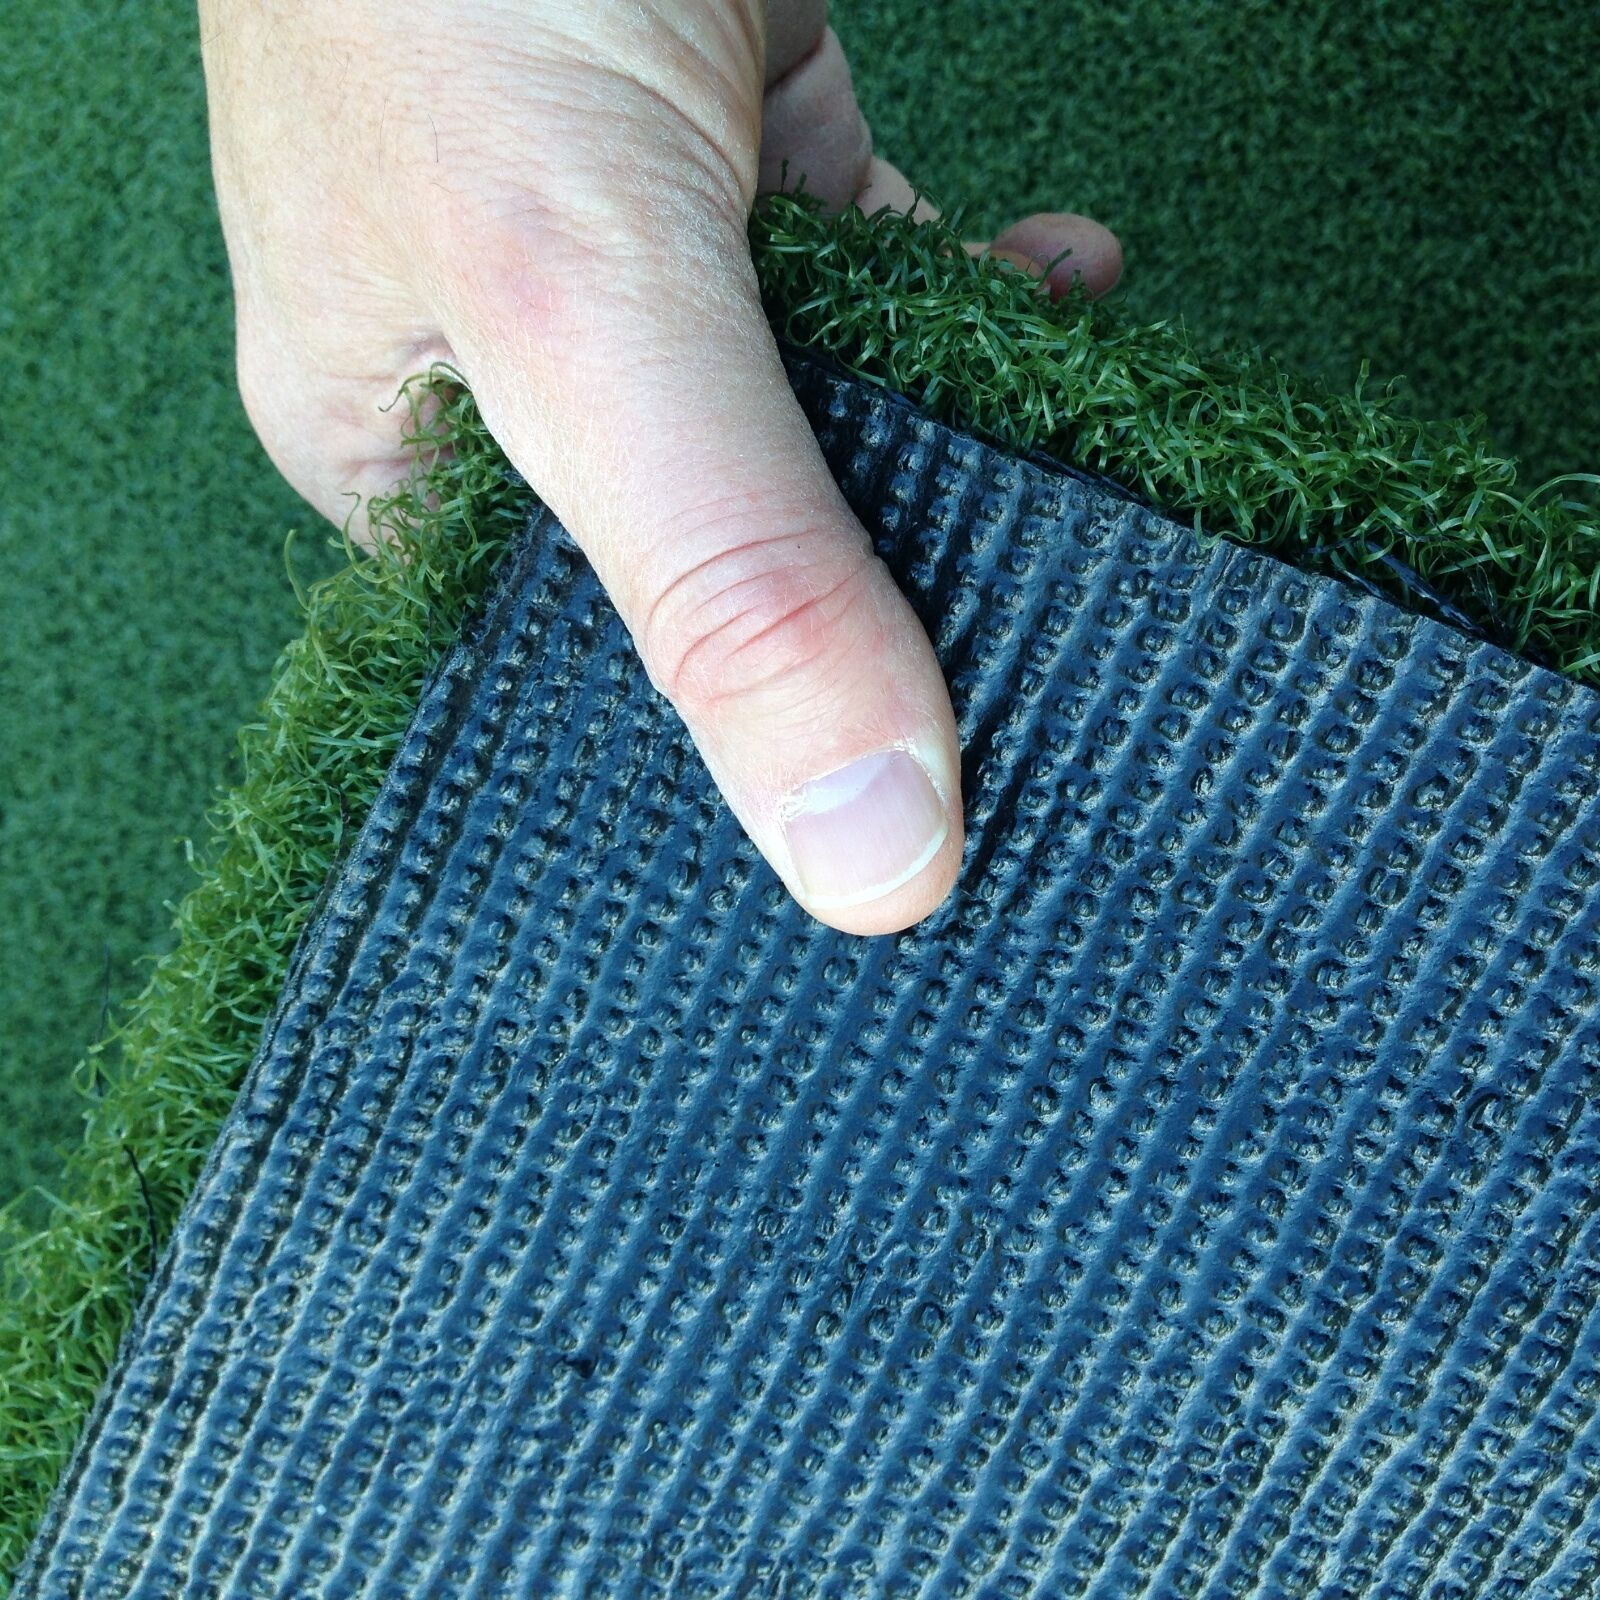 Thick High-Quality Golf Mats 3' x 5' Premium Golf Practice Turf Mat - The Golfing Eagles